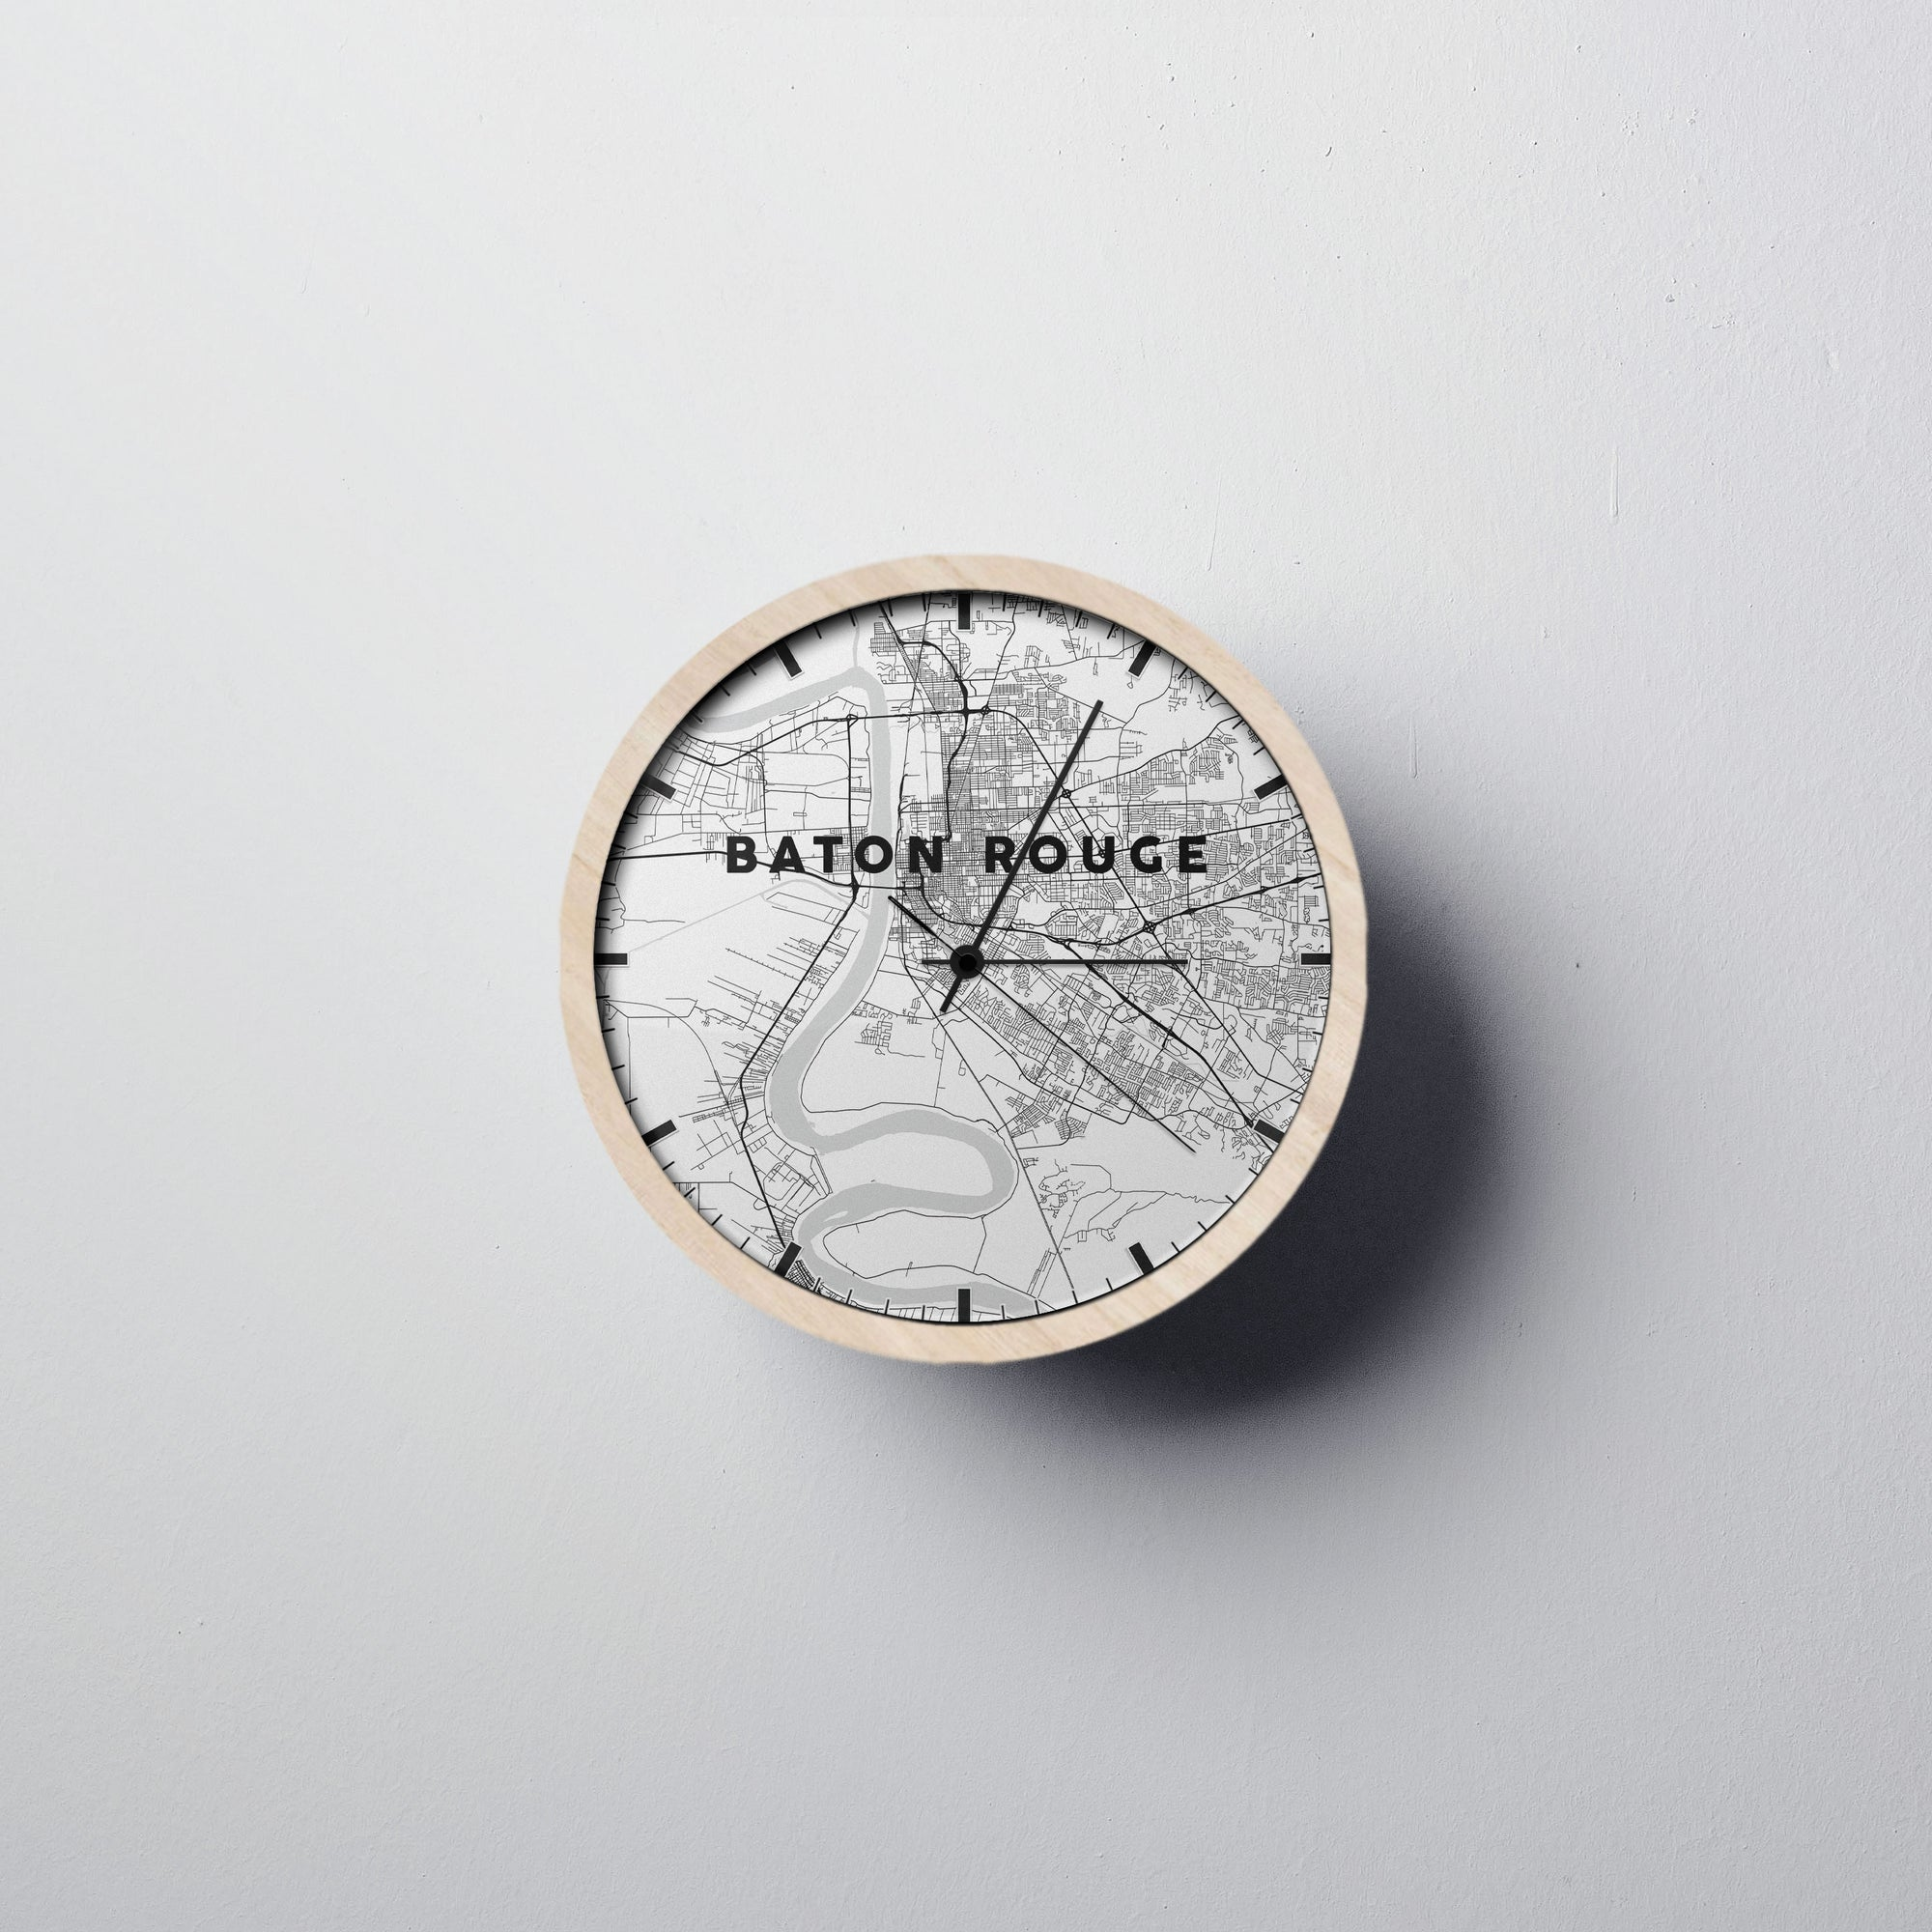 Baton-rouge Wall Clock - Point Two Design